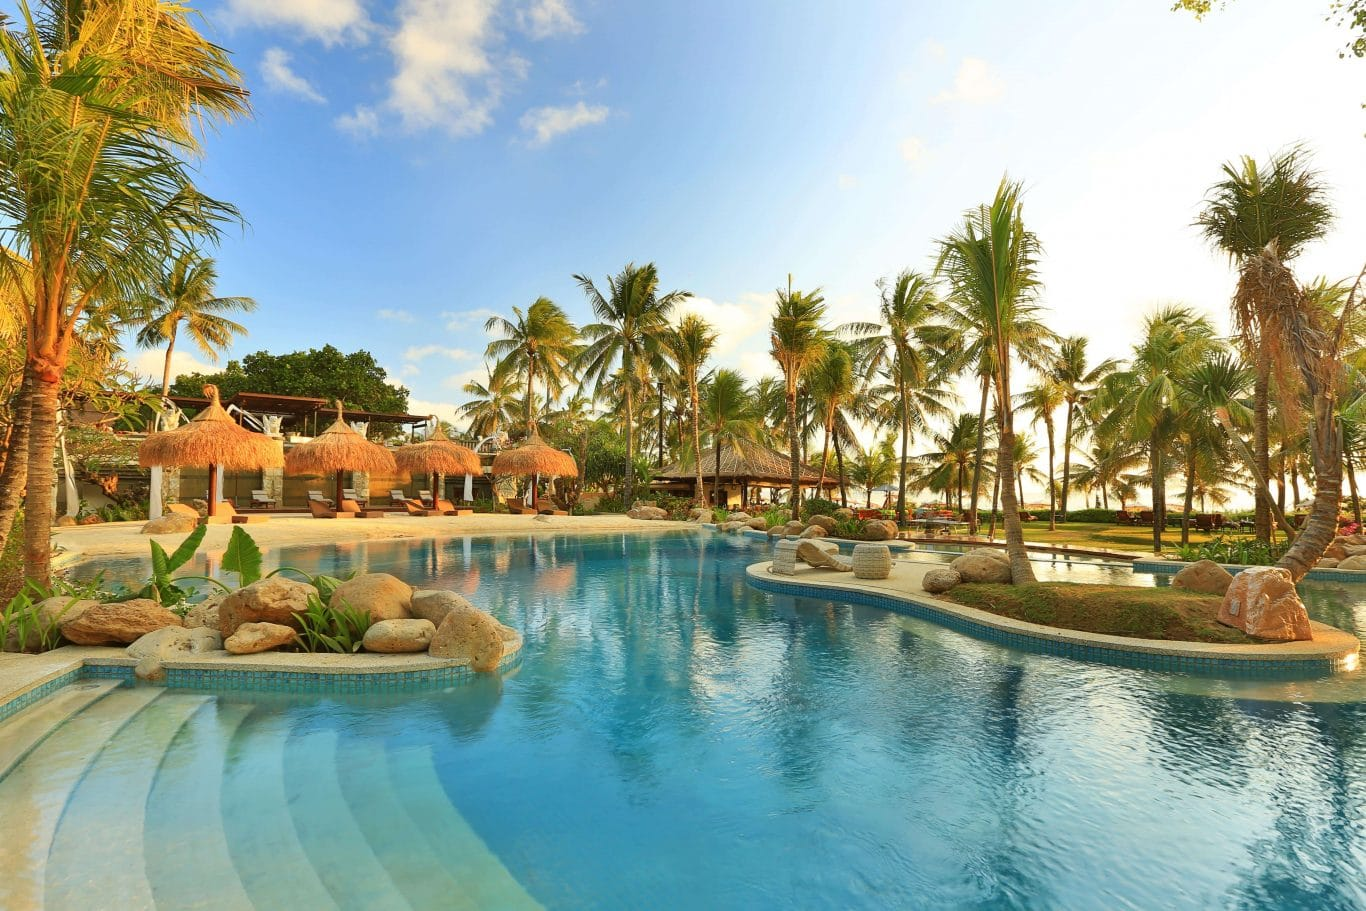 Bali Mandira Beach Resort & Spa: Legian's Laidback Oceanfront Luxury